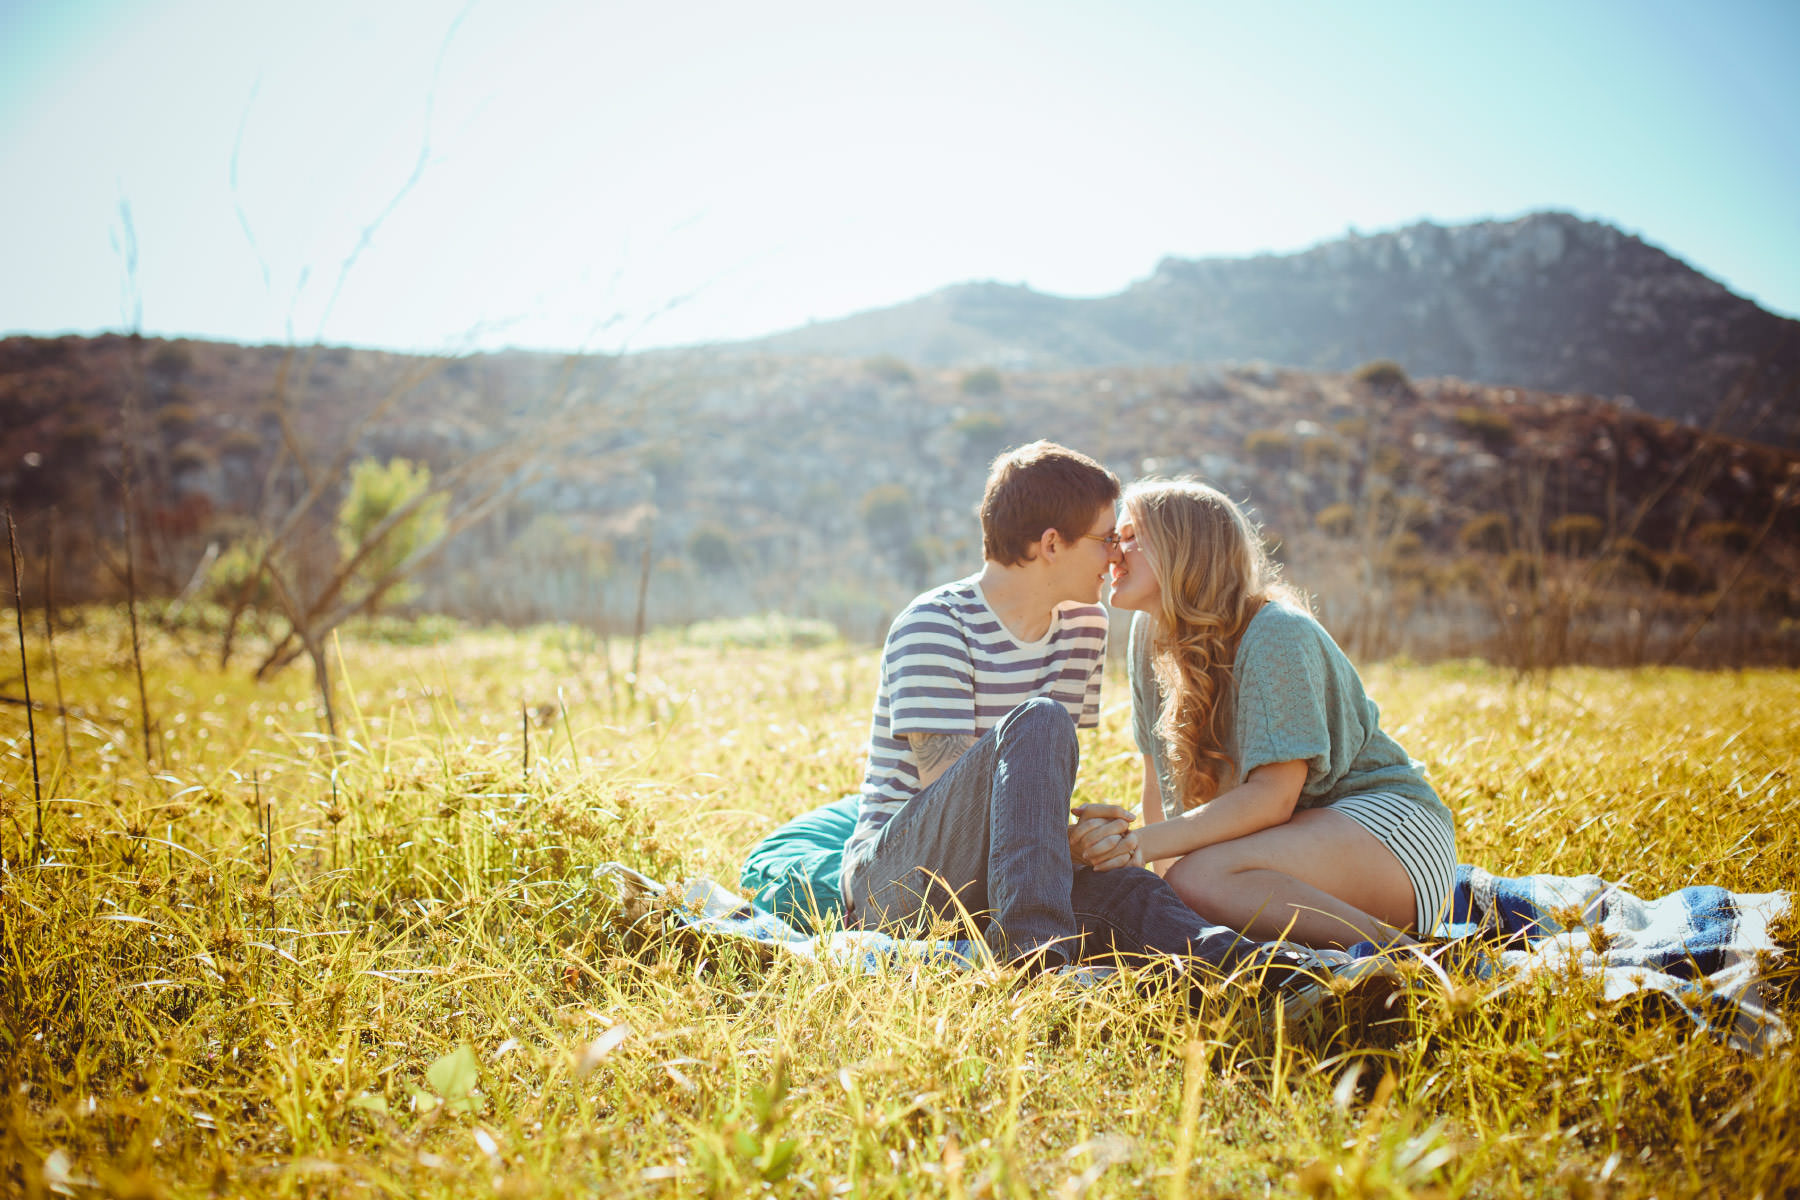 Kissing on a picnic blanket at Lake Hodges